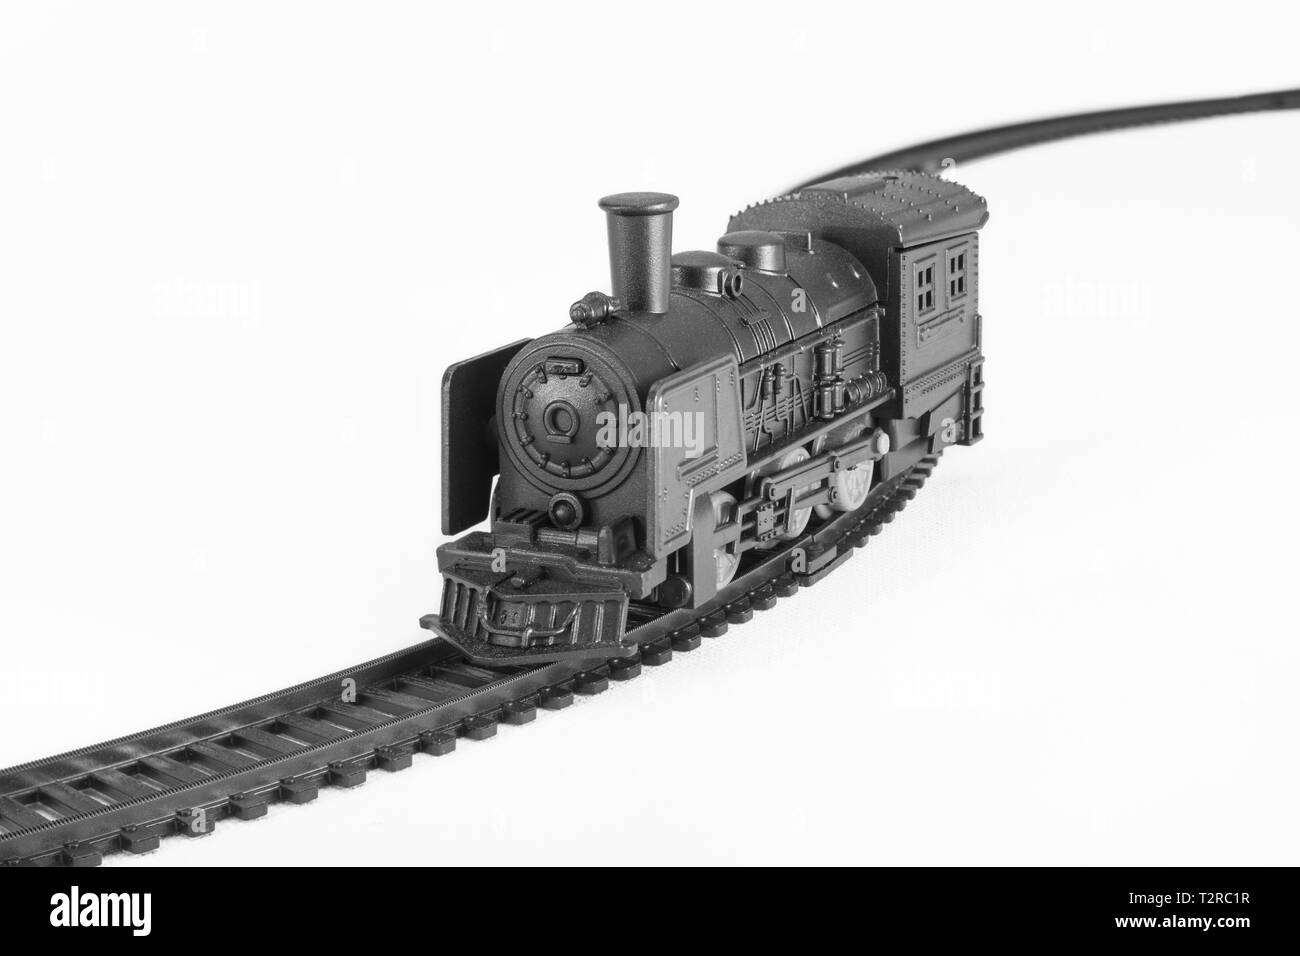 Black painted toy steam engine model and track. Metaphor On the Right Track, gravy train, old railroads, rail network, toy train set, career track. Stock Photo